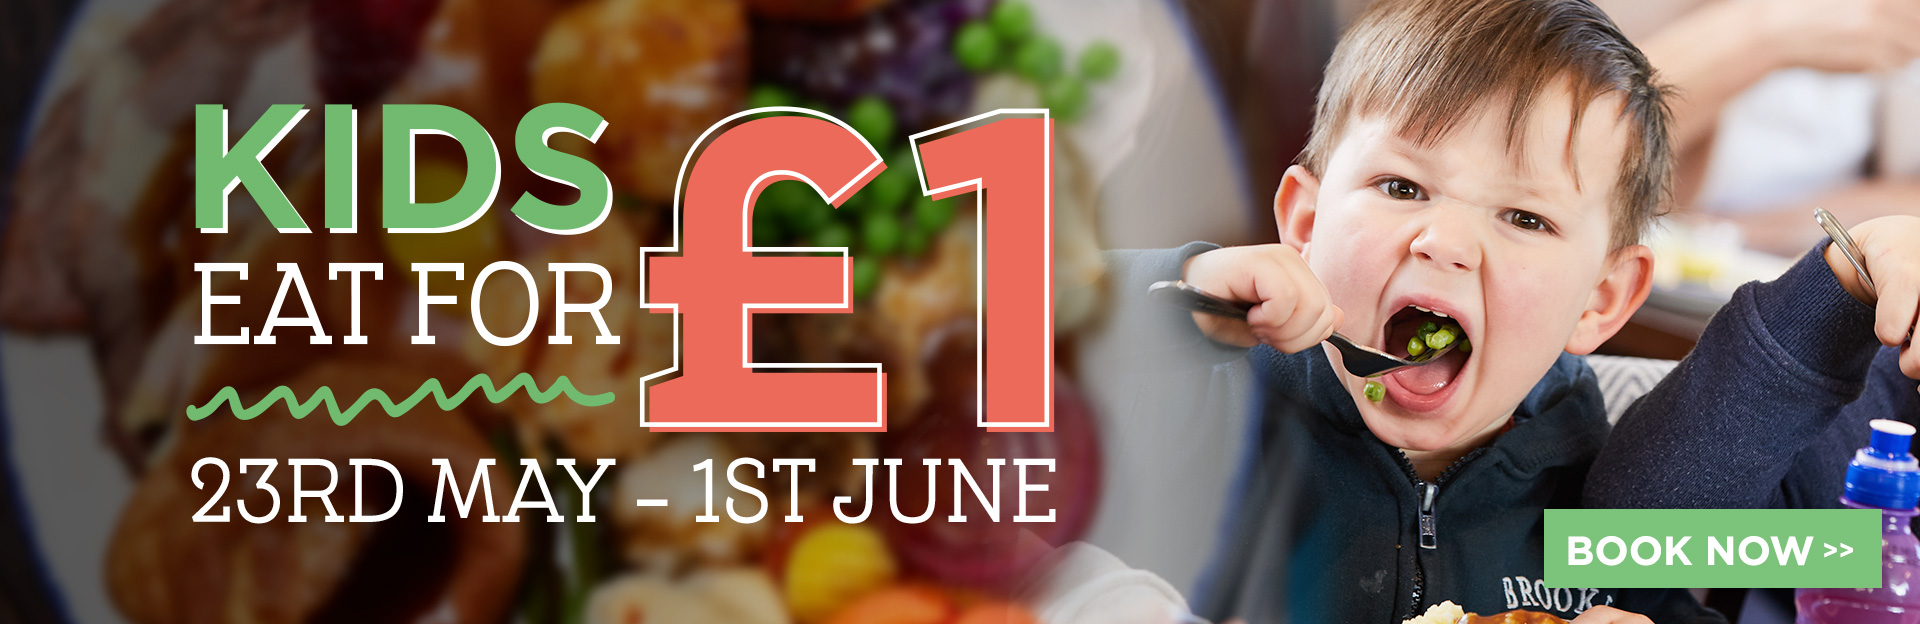 Kids eat for £1 at The Inn by the Sea